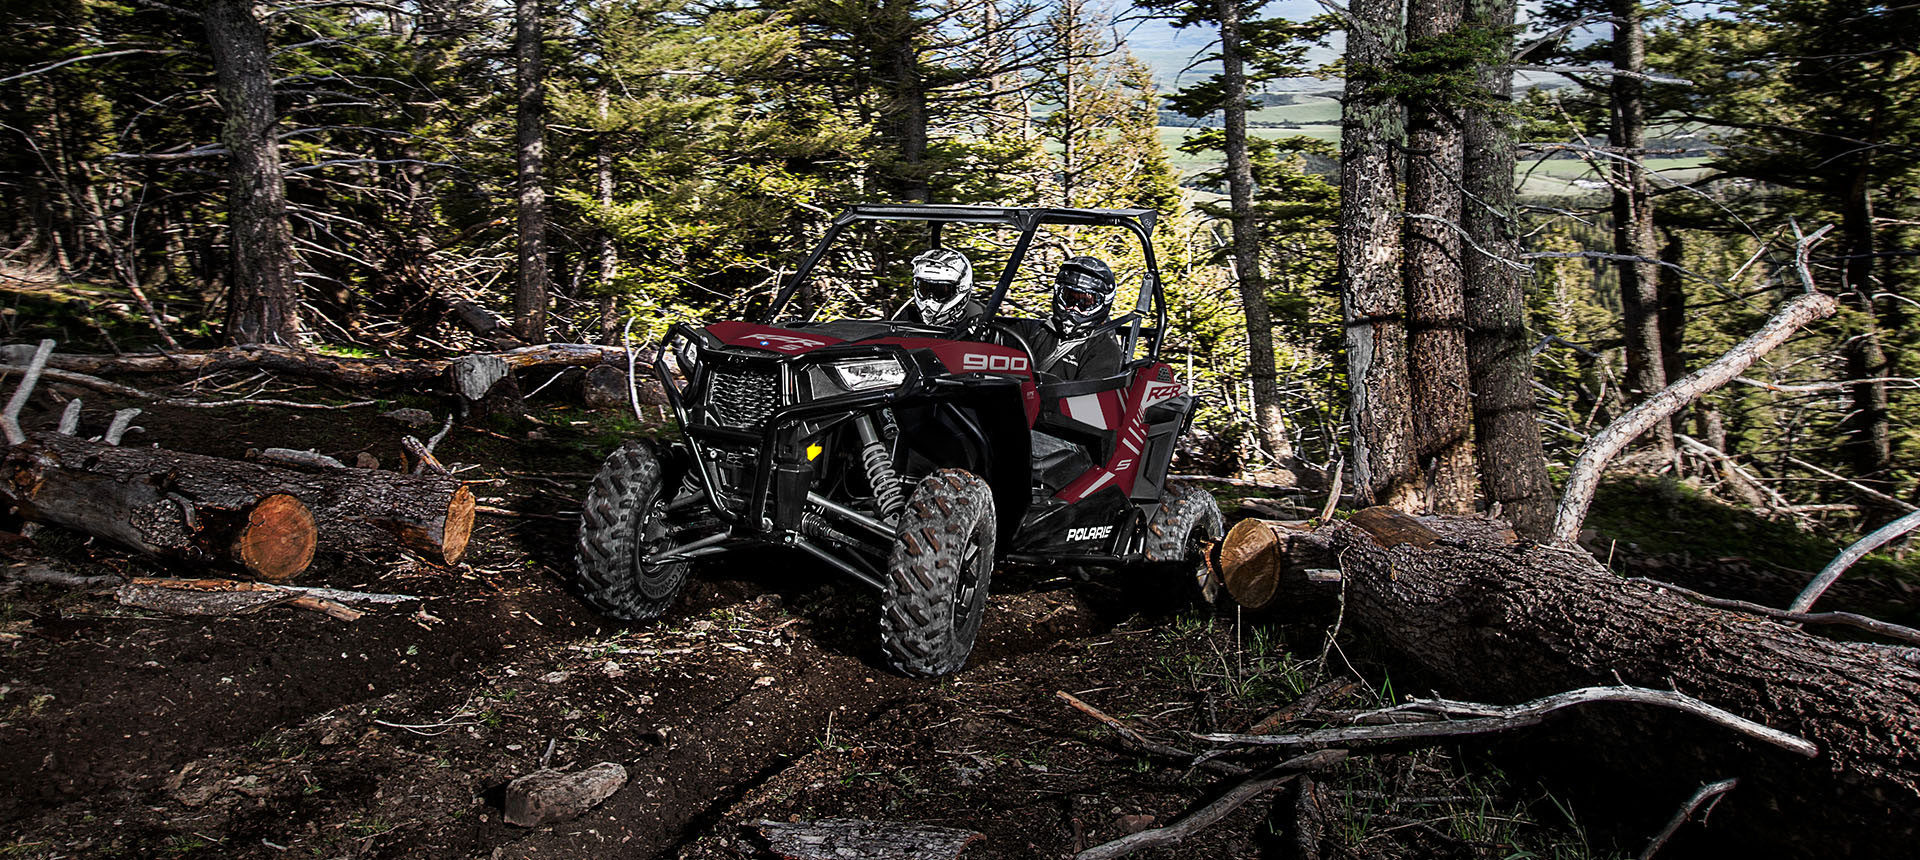 2020 RZR<sup>®</sup> Trail S 900 Instagram image 1